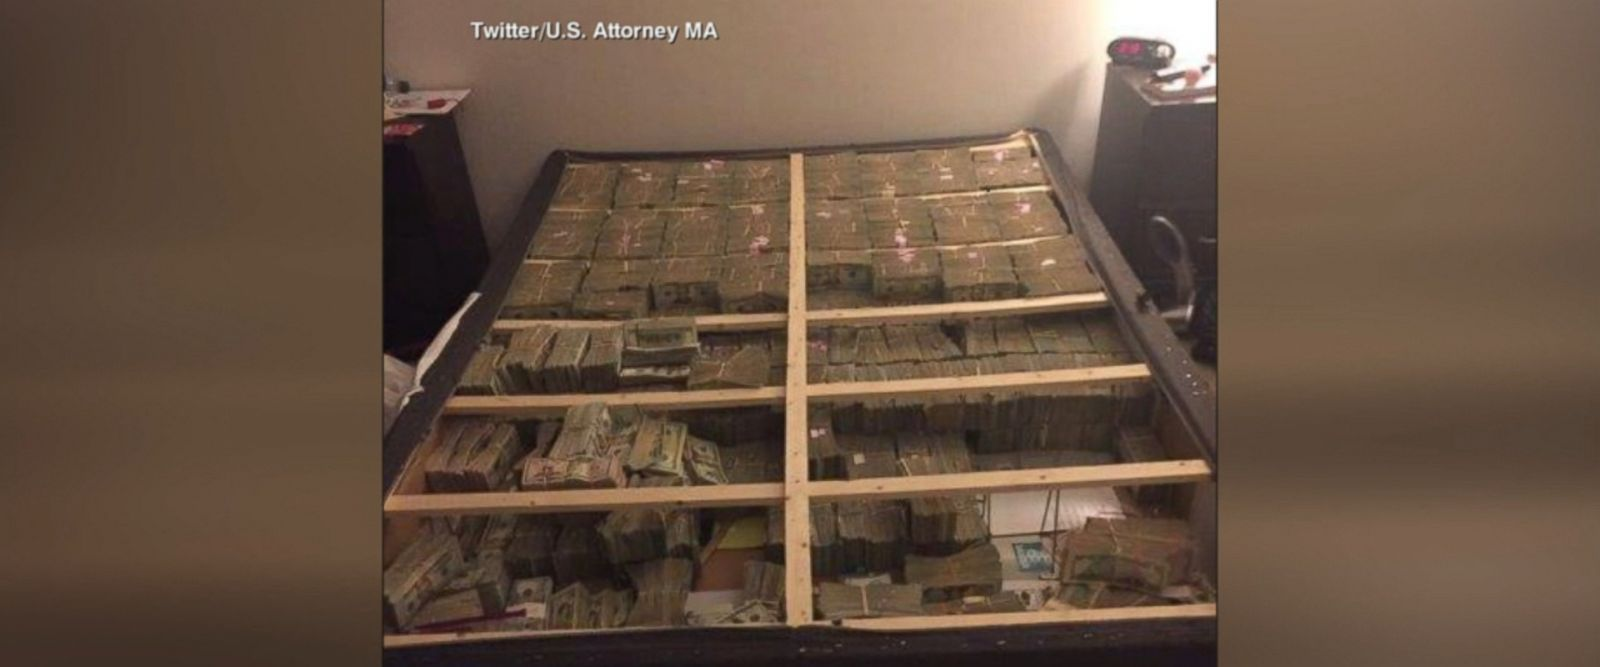 VIDEO: A new image released by the U.S. Attorney's Office on Monday shows $20 million in cash that authorities found stashed in a box spring in a Massachusetts apartment.